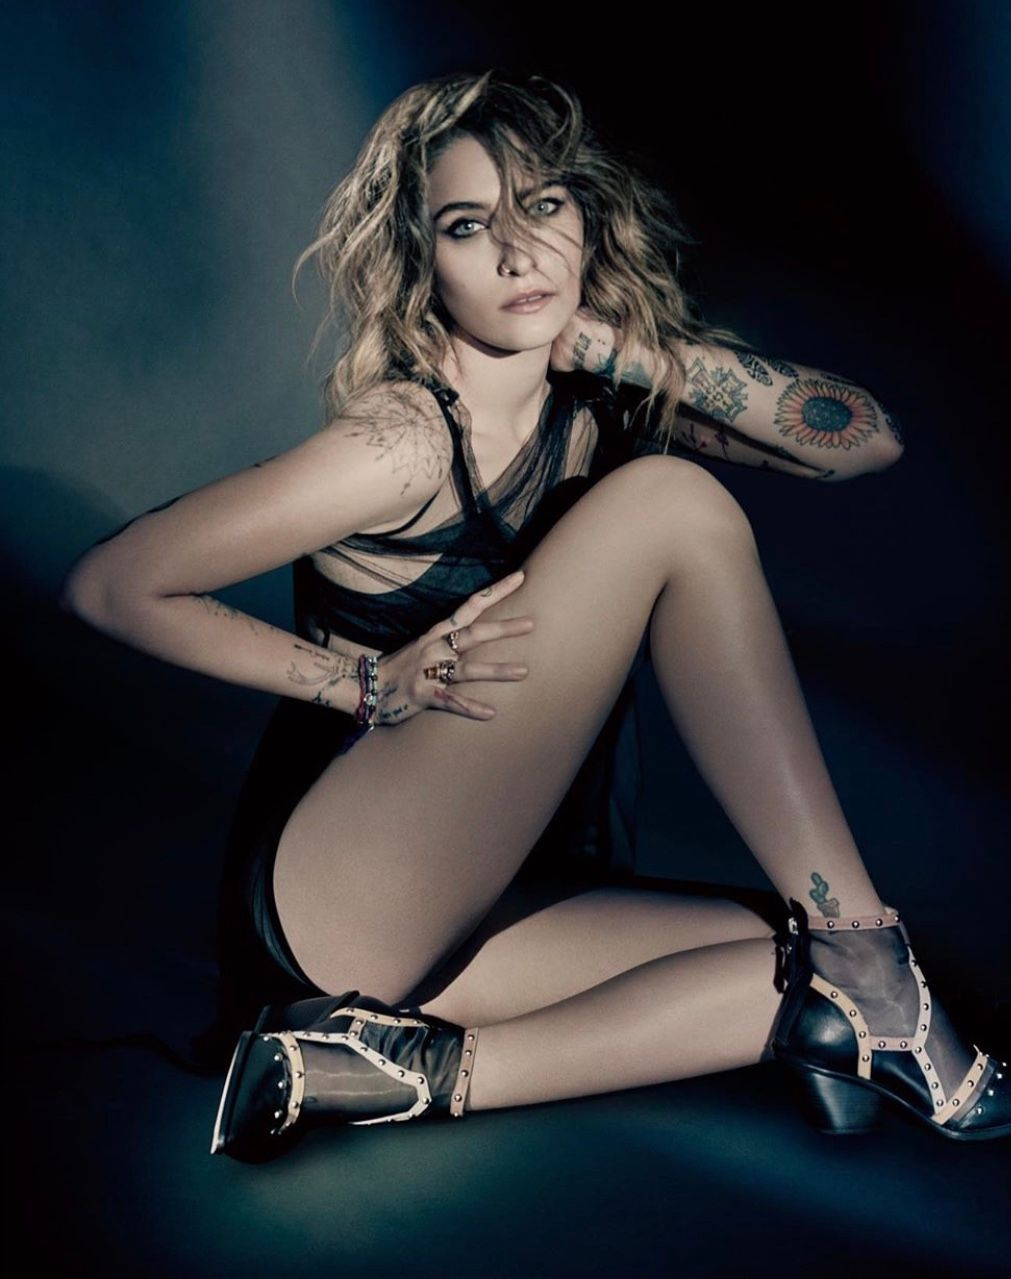 An amazing photo showing Paris Jackson sitting in a dark room, wearing a black lingerie and her legs crossed.